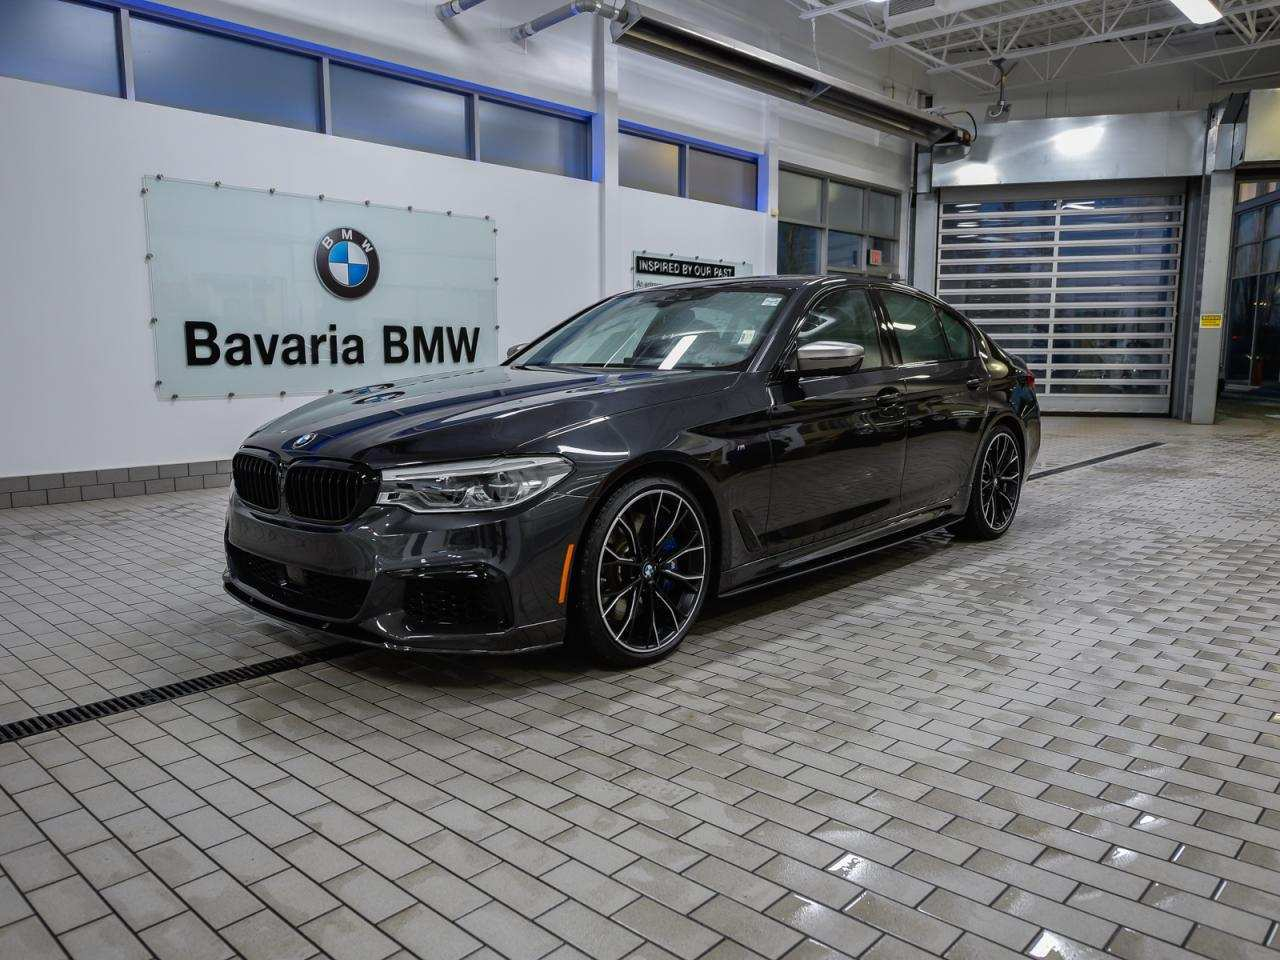 81 New 2019 Bmw Graphite Edition Images